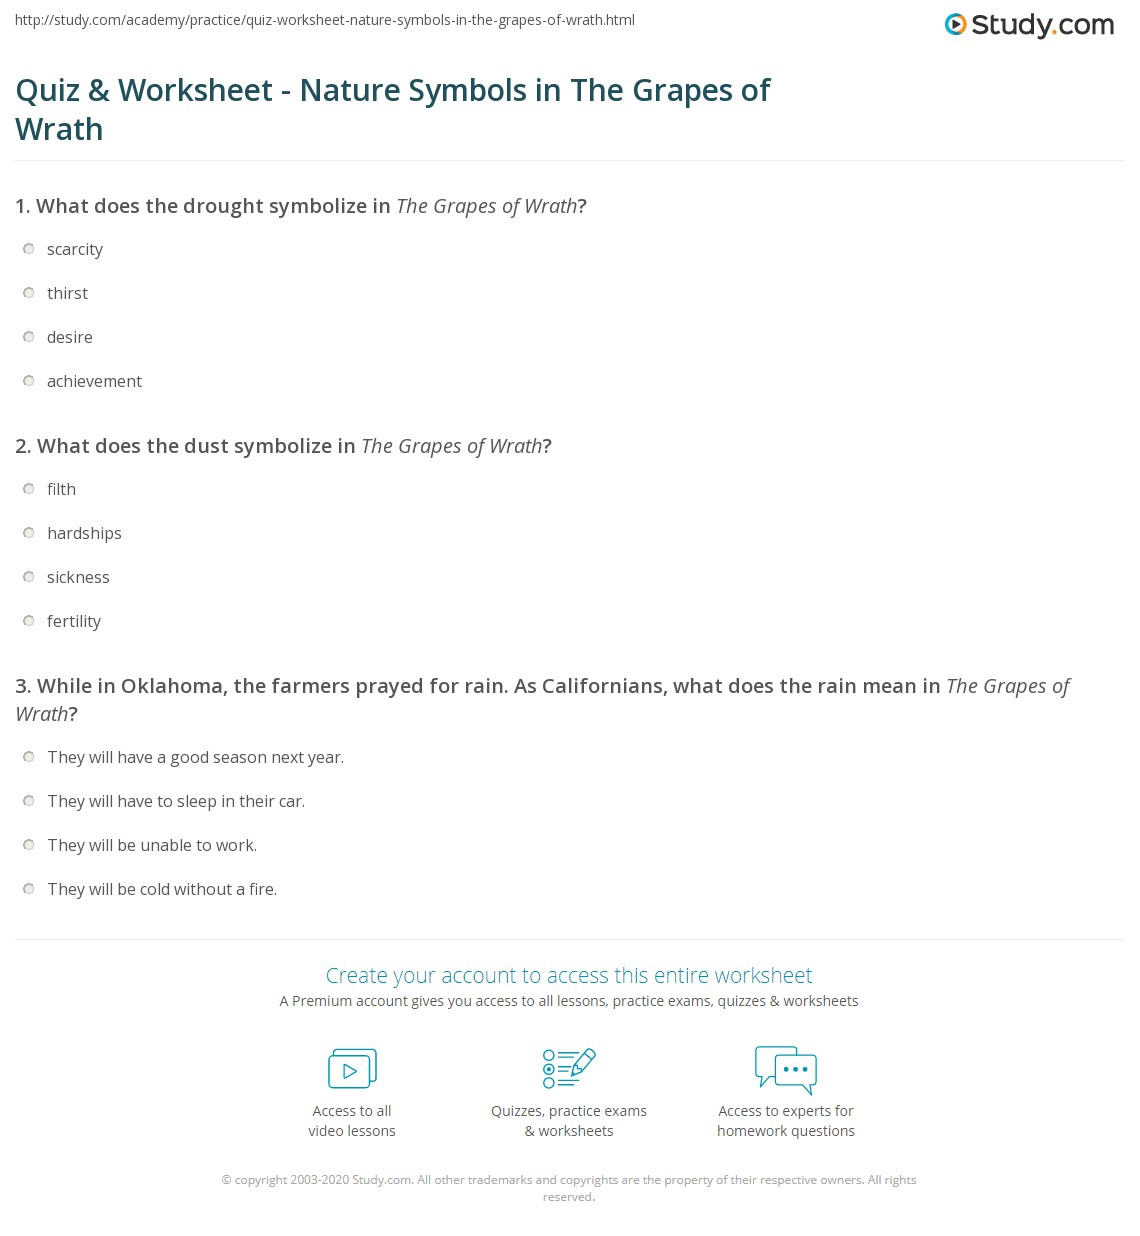 Quiz Worksheet Nature Symbols In The Grapes Of Wrath Study